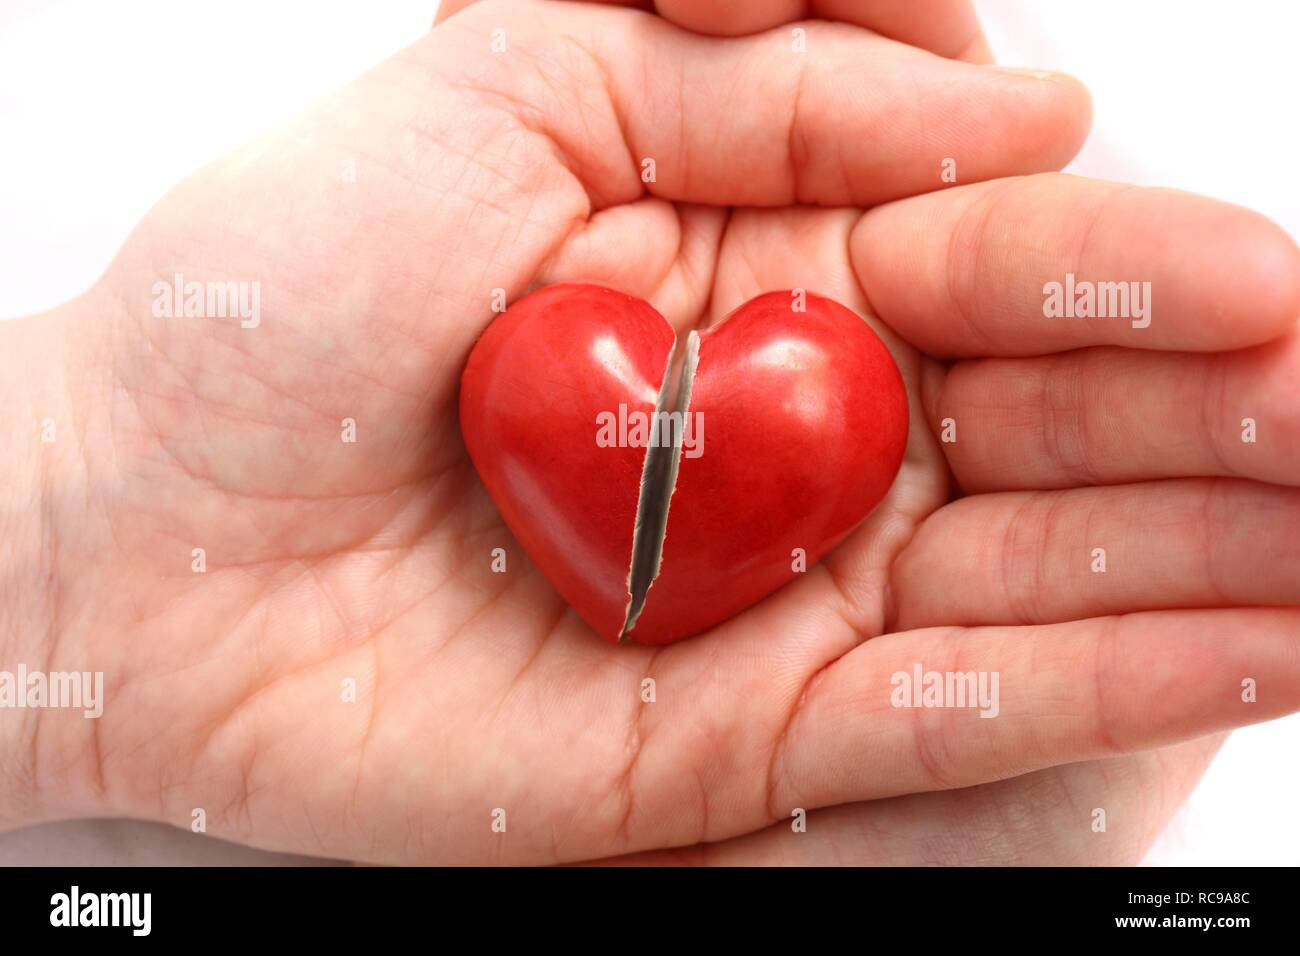 Hand holding a broken heart, symbolic image for heart disease, heart attack, a diseased heart, cardiology or heartache - Stock Image